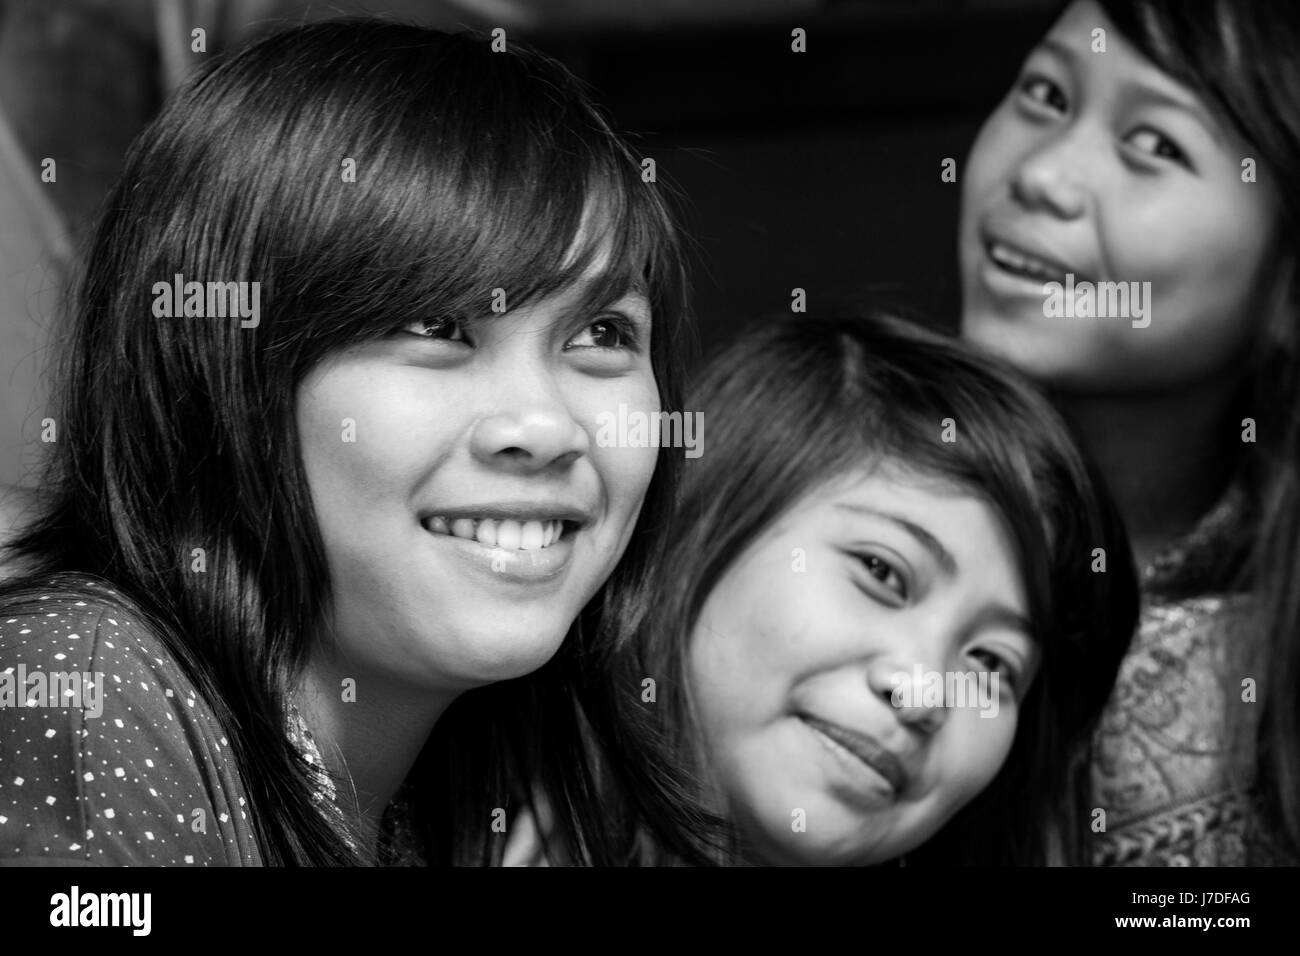 Beautiful girls from Tana Toraja ethnic minority group. Close-up face portrait in black and white. Togetherness - Stock Image